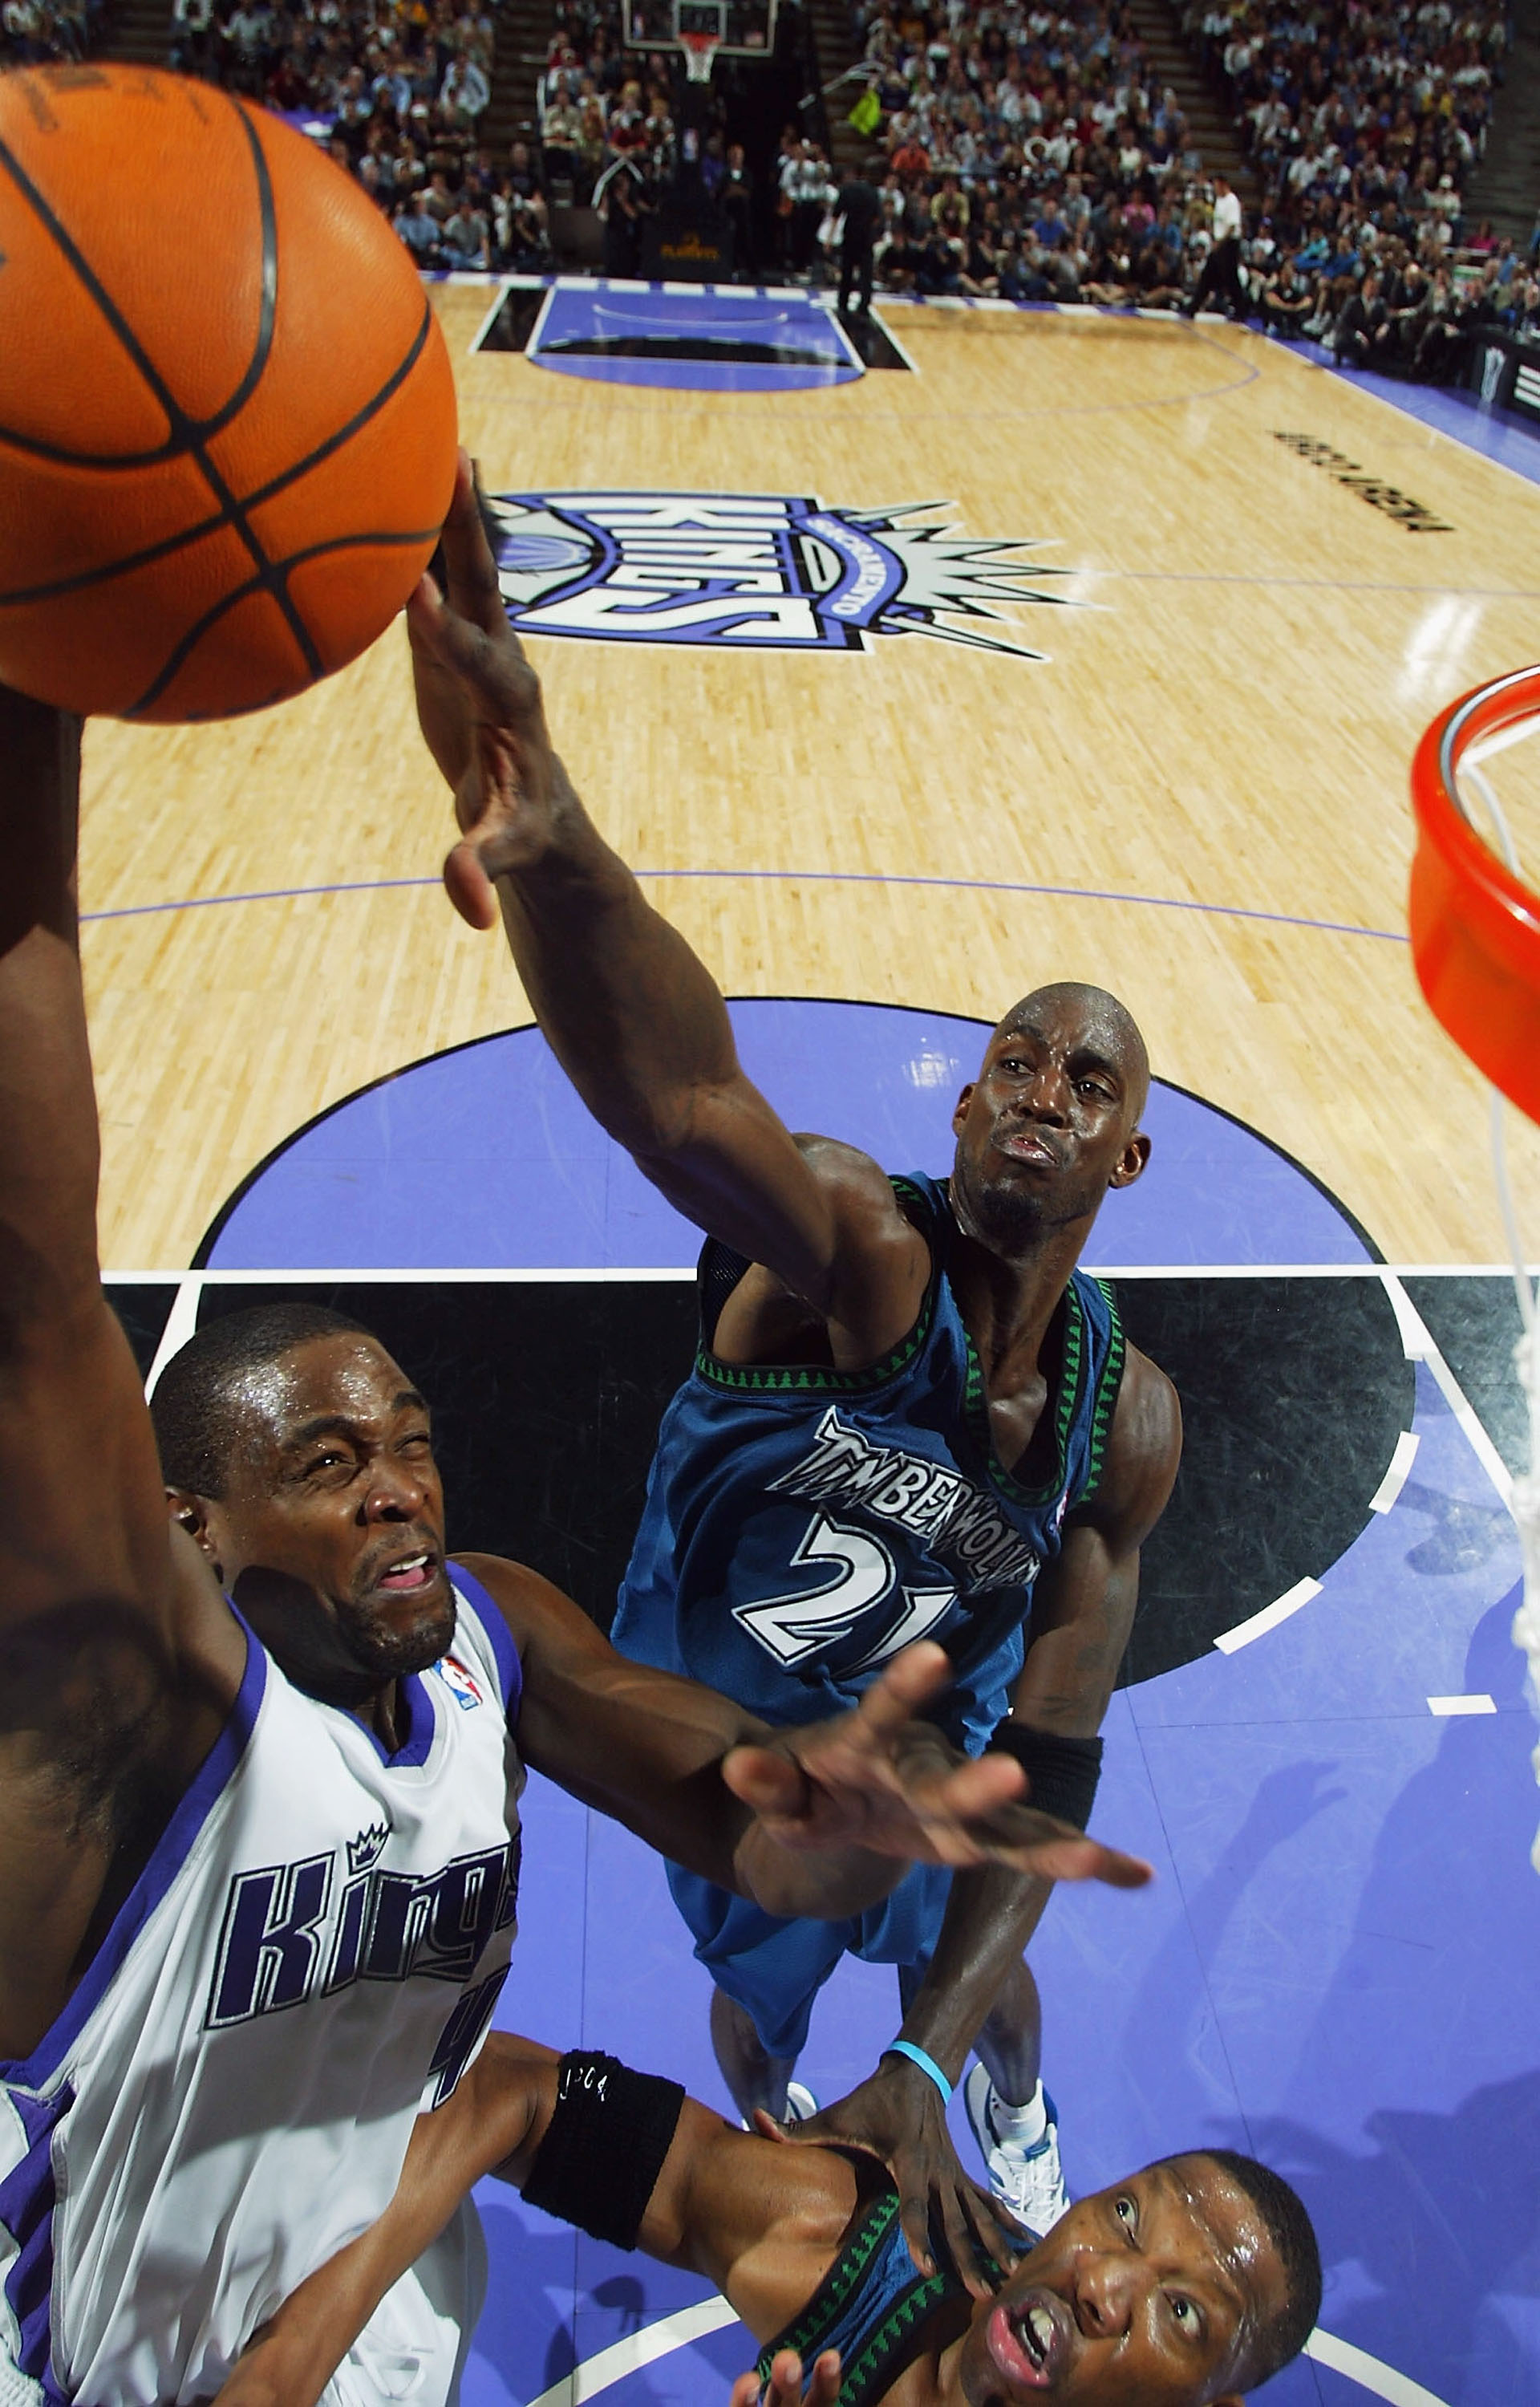 SACRAMENTO, CA- MAY 10:  Kevin Garnett #21 of the Minnesota Timberwolves defends against Chris Webber #4 of the Sacramento Kings during game 3 of the Western Conference Semifinal of the NBA Playoffs at Arco Arena on May 10, 2004  in Sacramento, California